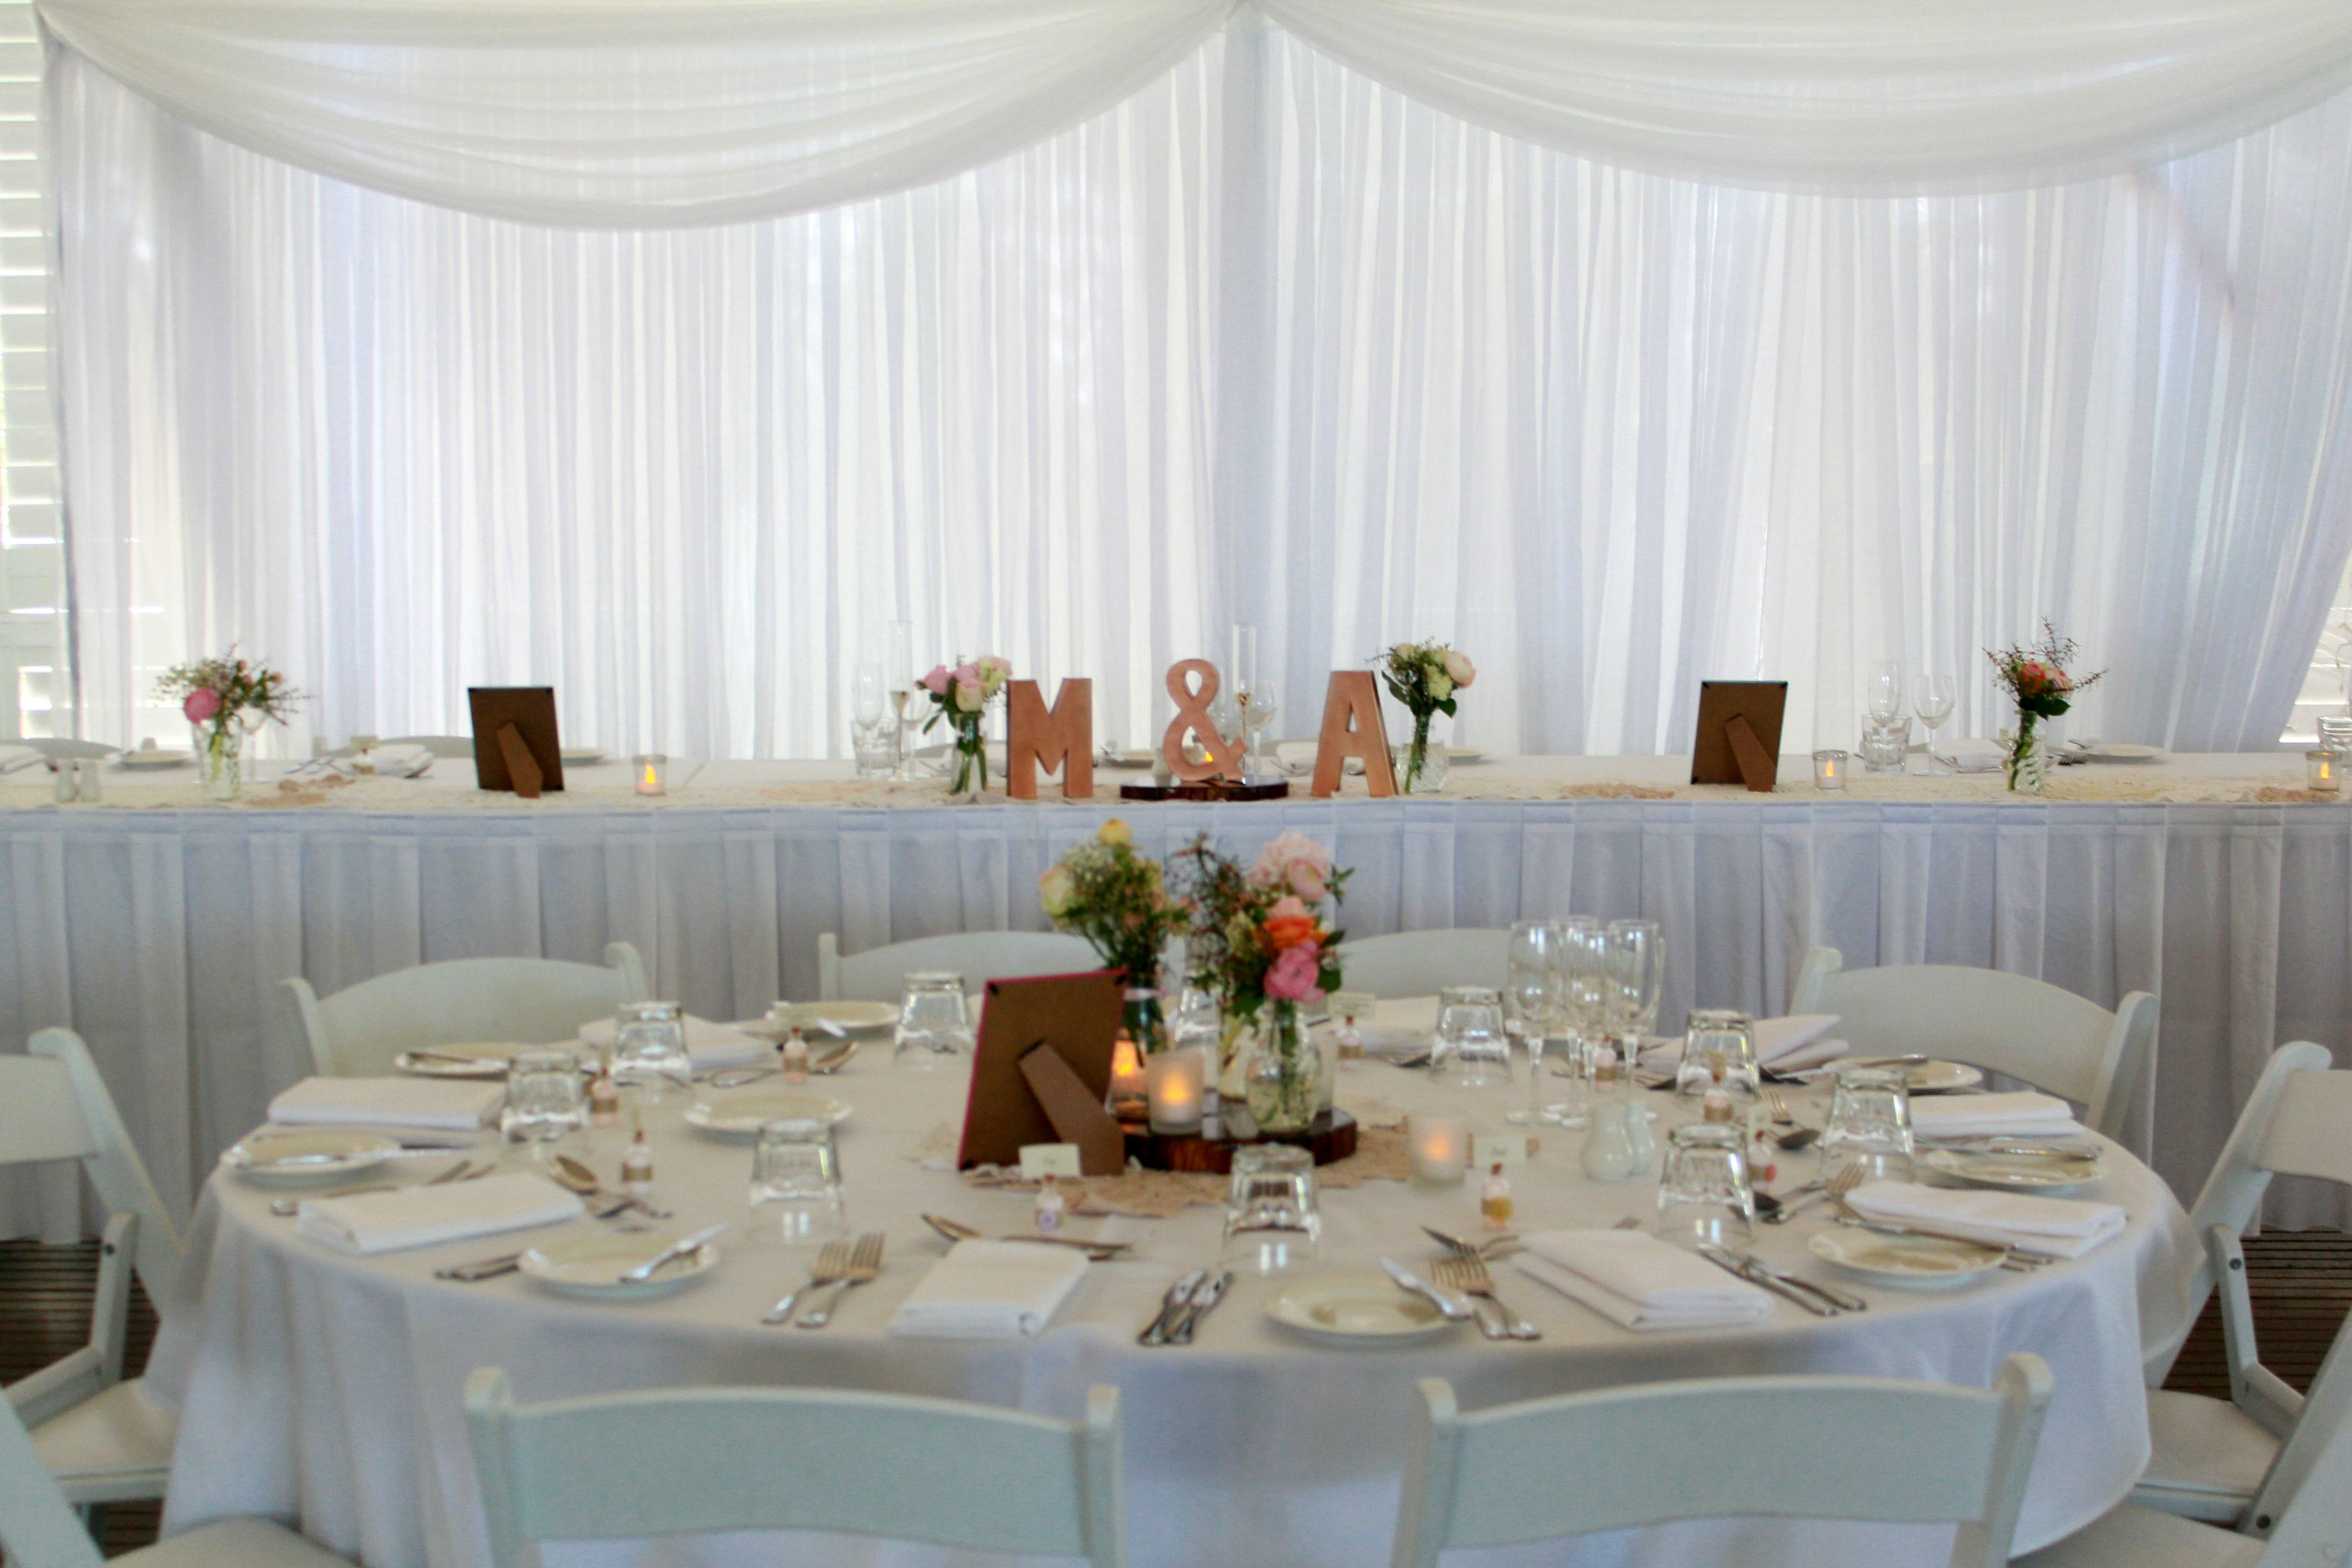 Dorable wedding reception venues townsville image the wedding mercure townsville plantation deck wedding reception white junglespirit Image collections